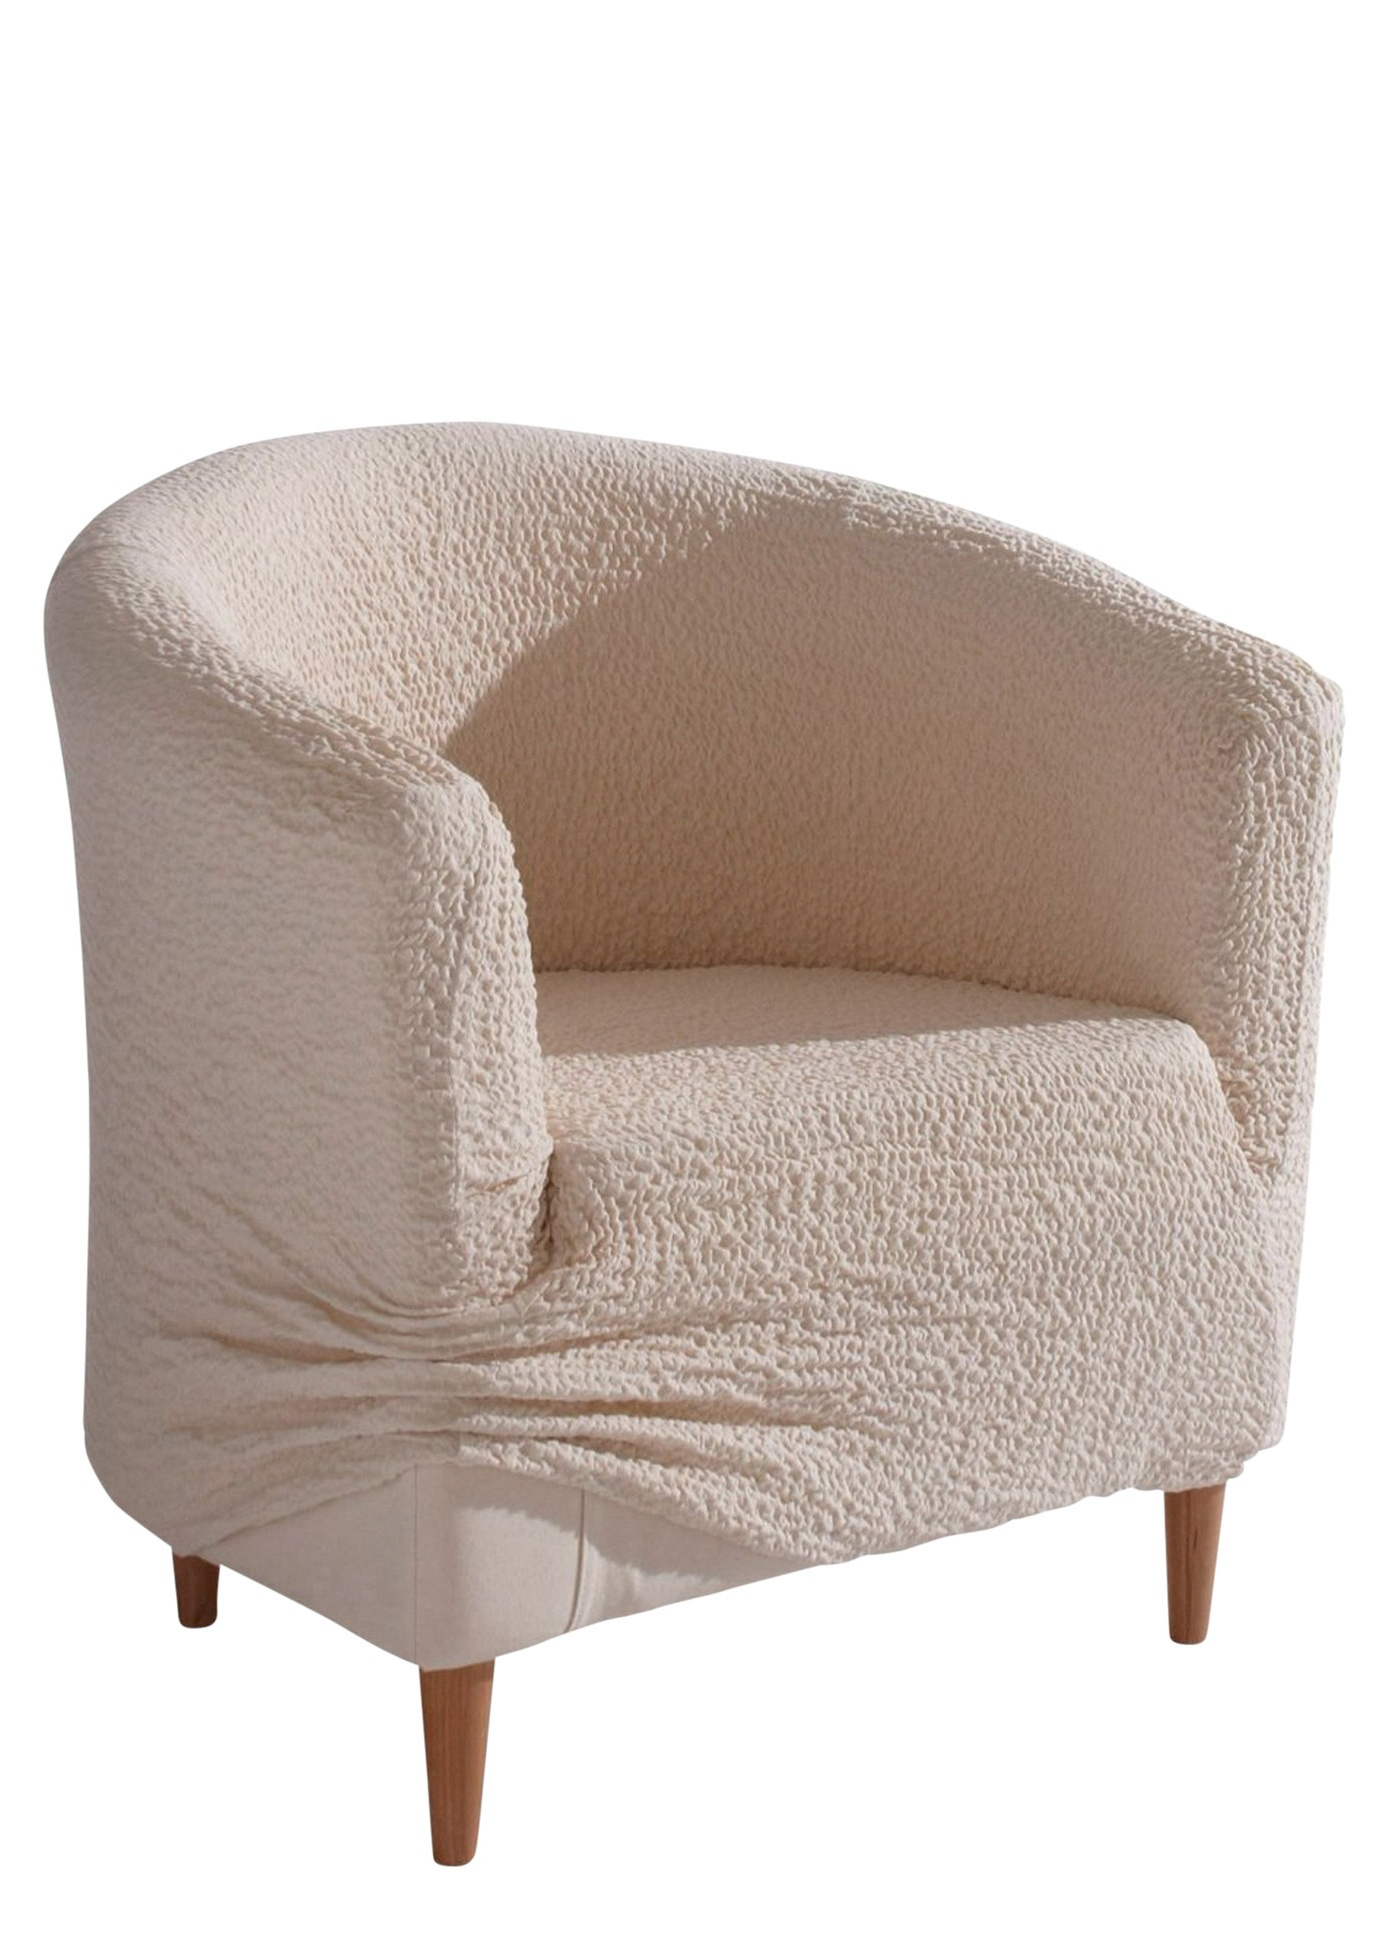 Fauteuilhoes Crinkle